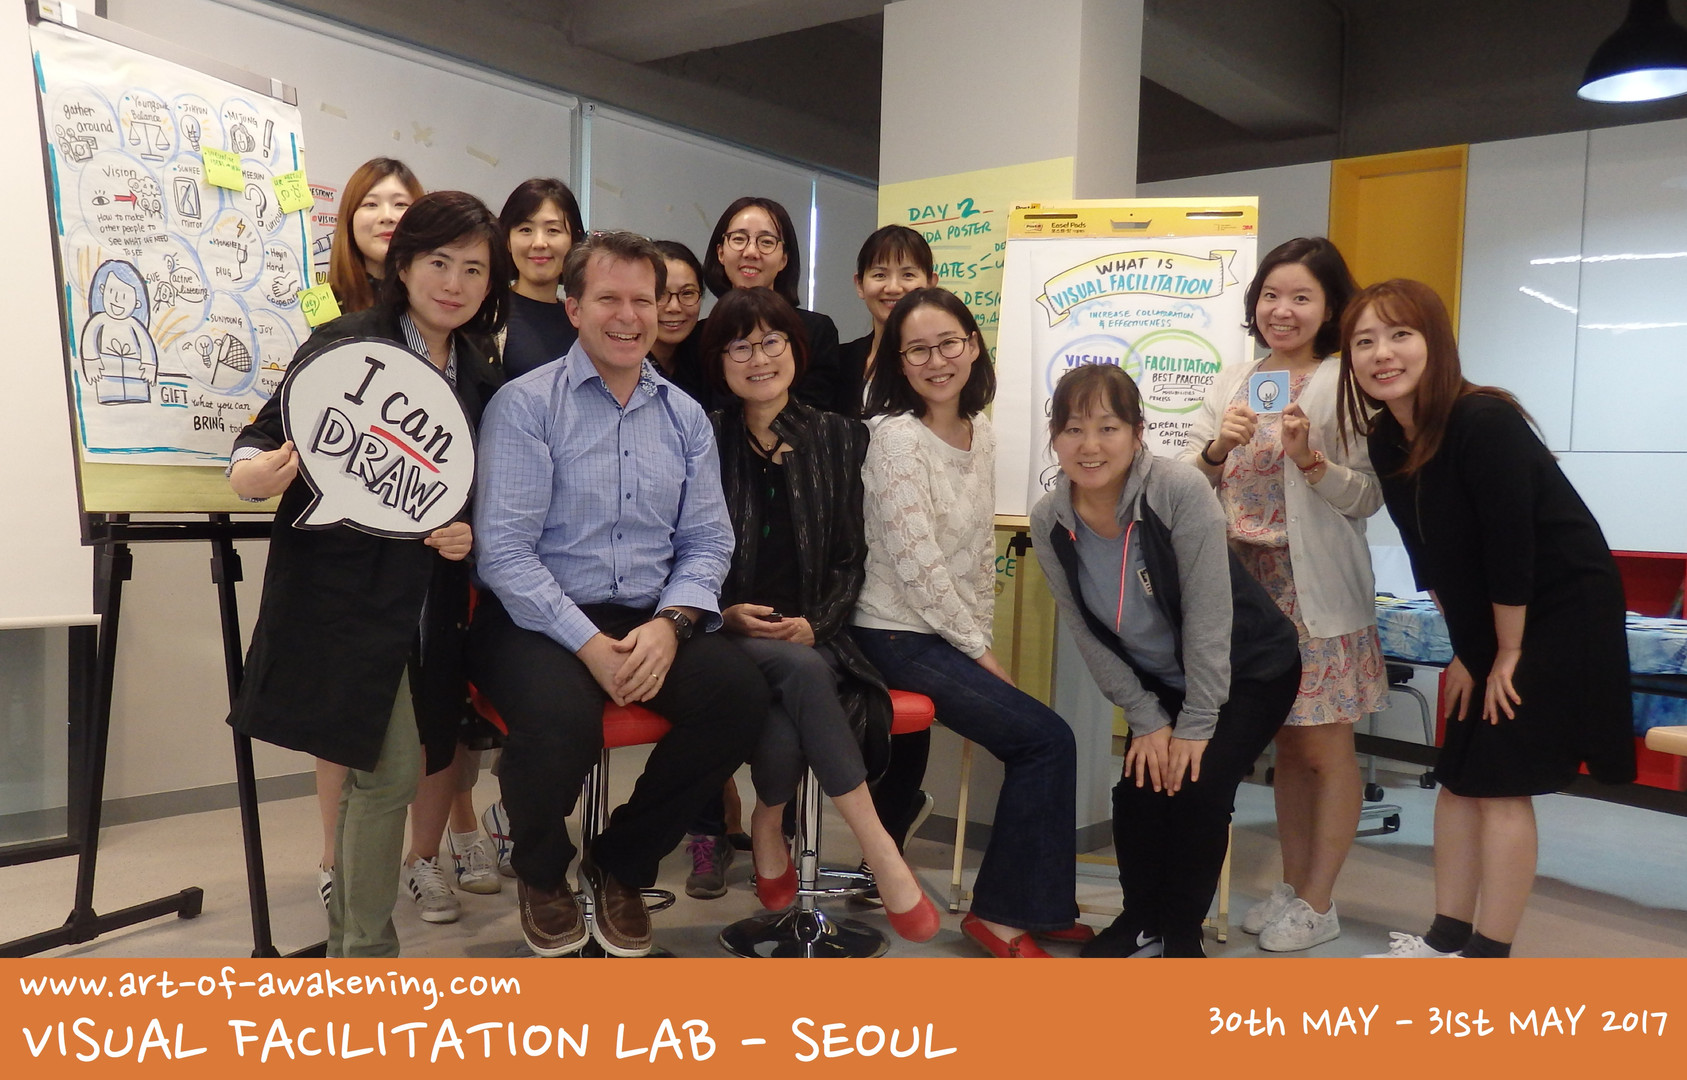 VFL Batch 02 - May 2017 - Seoul